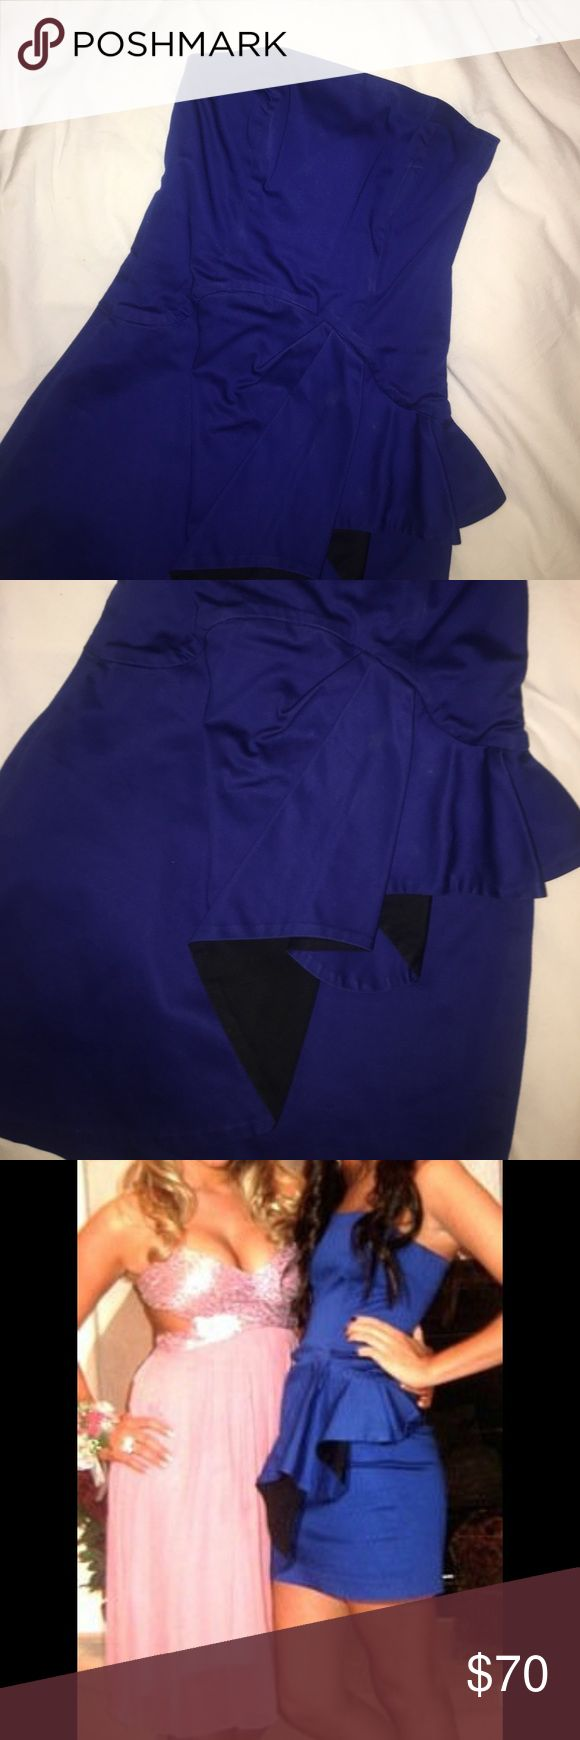 French Connection Blue Dress with Black Ruffle French Connection Blue Dress with Black Ruffle. Size 0. Worn once. Perfect for any evening occasion or wedding! French Connection Dresses Mini